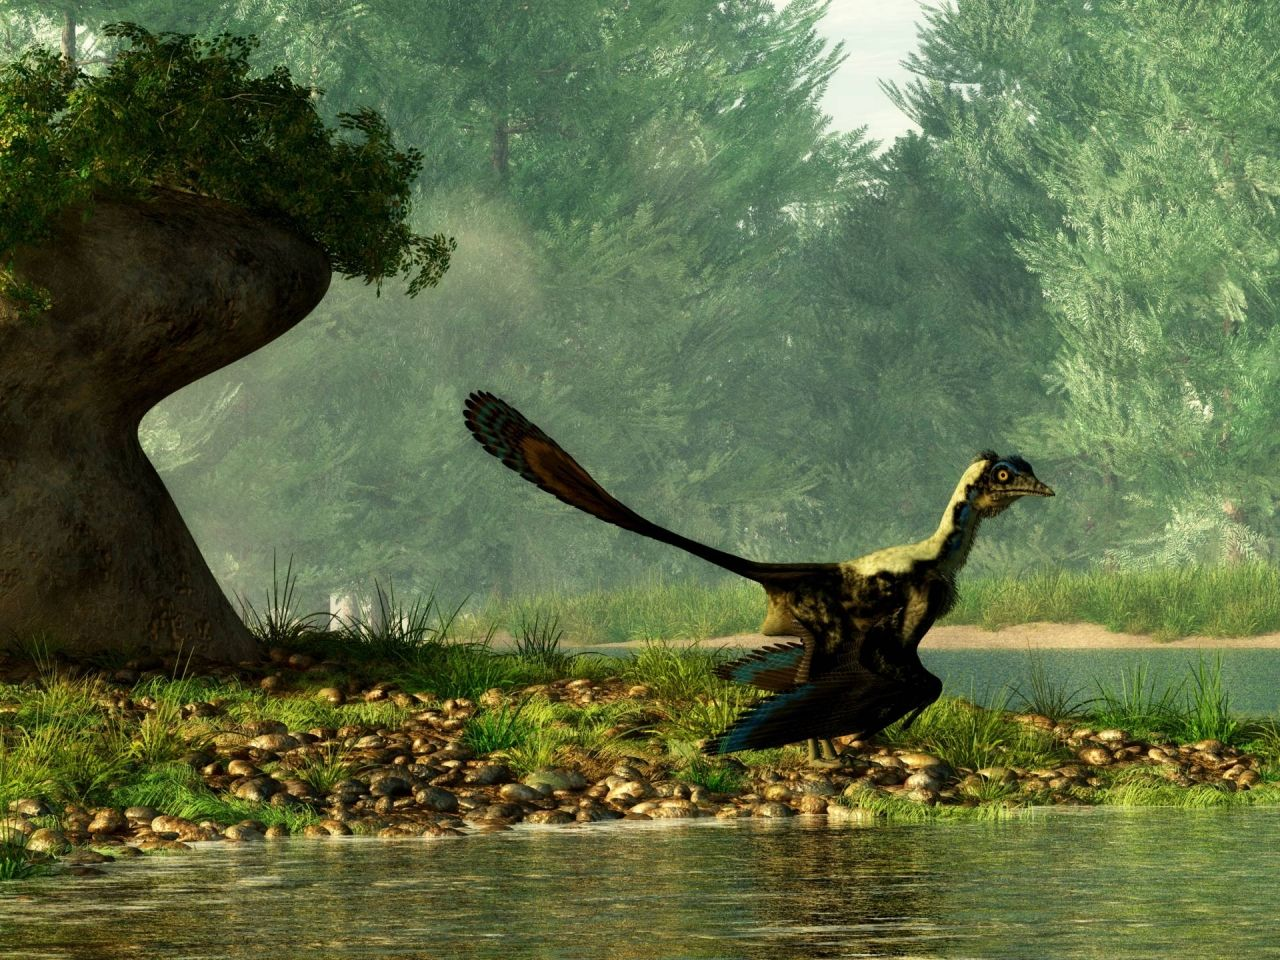 Archaeopteryx lithographica u vody